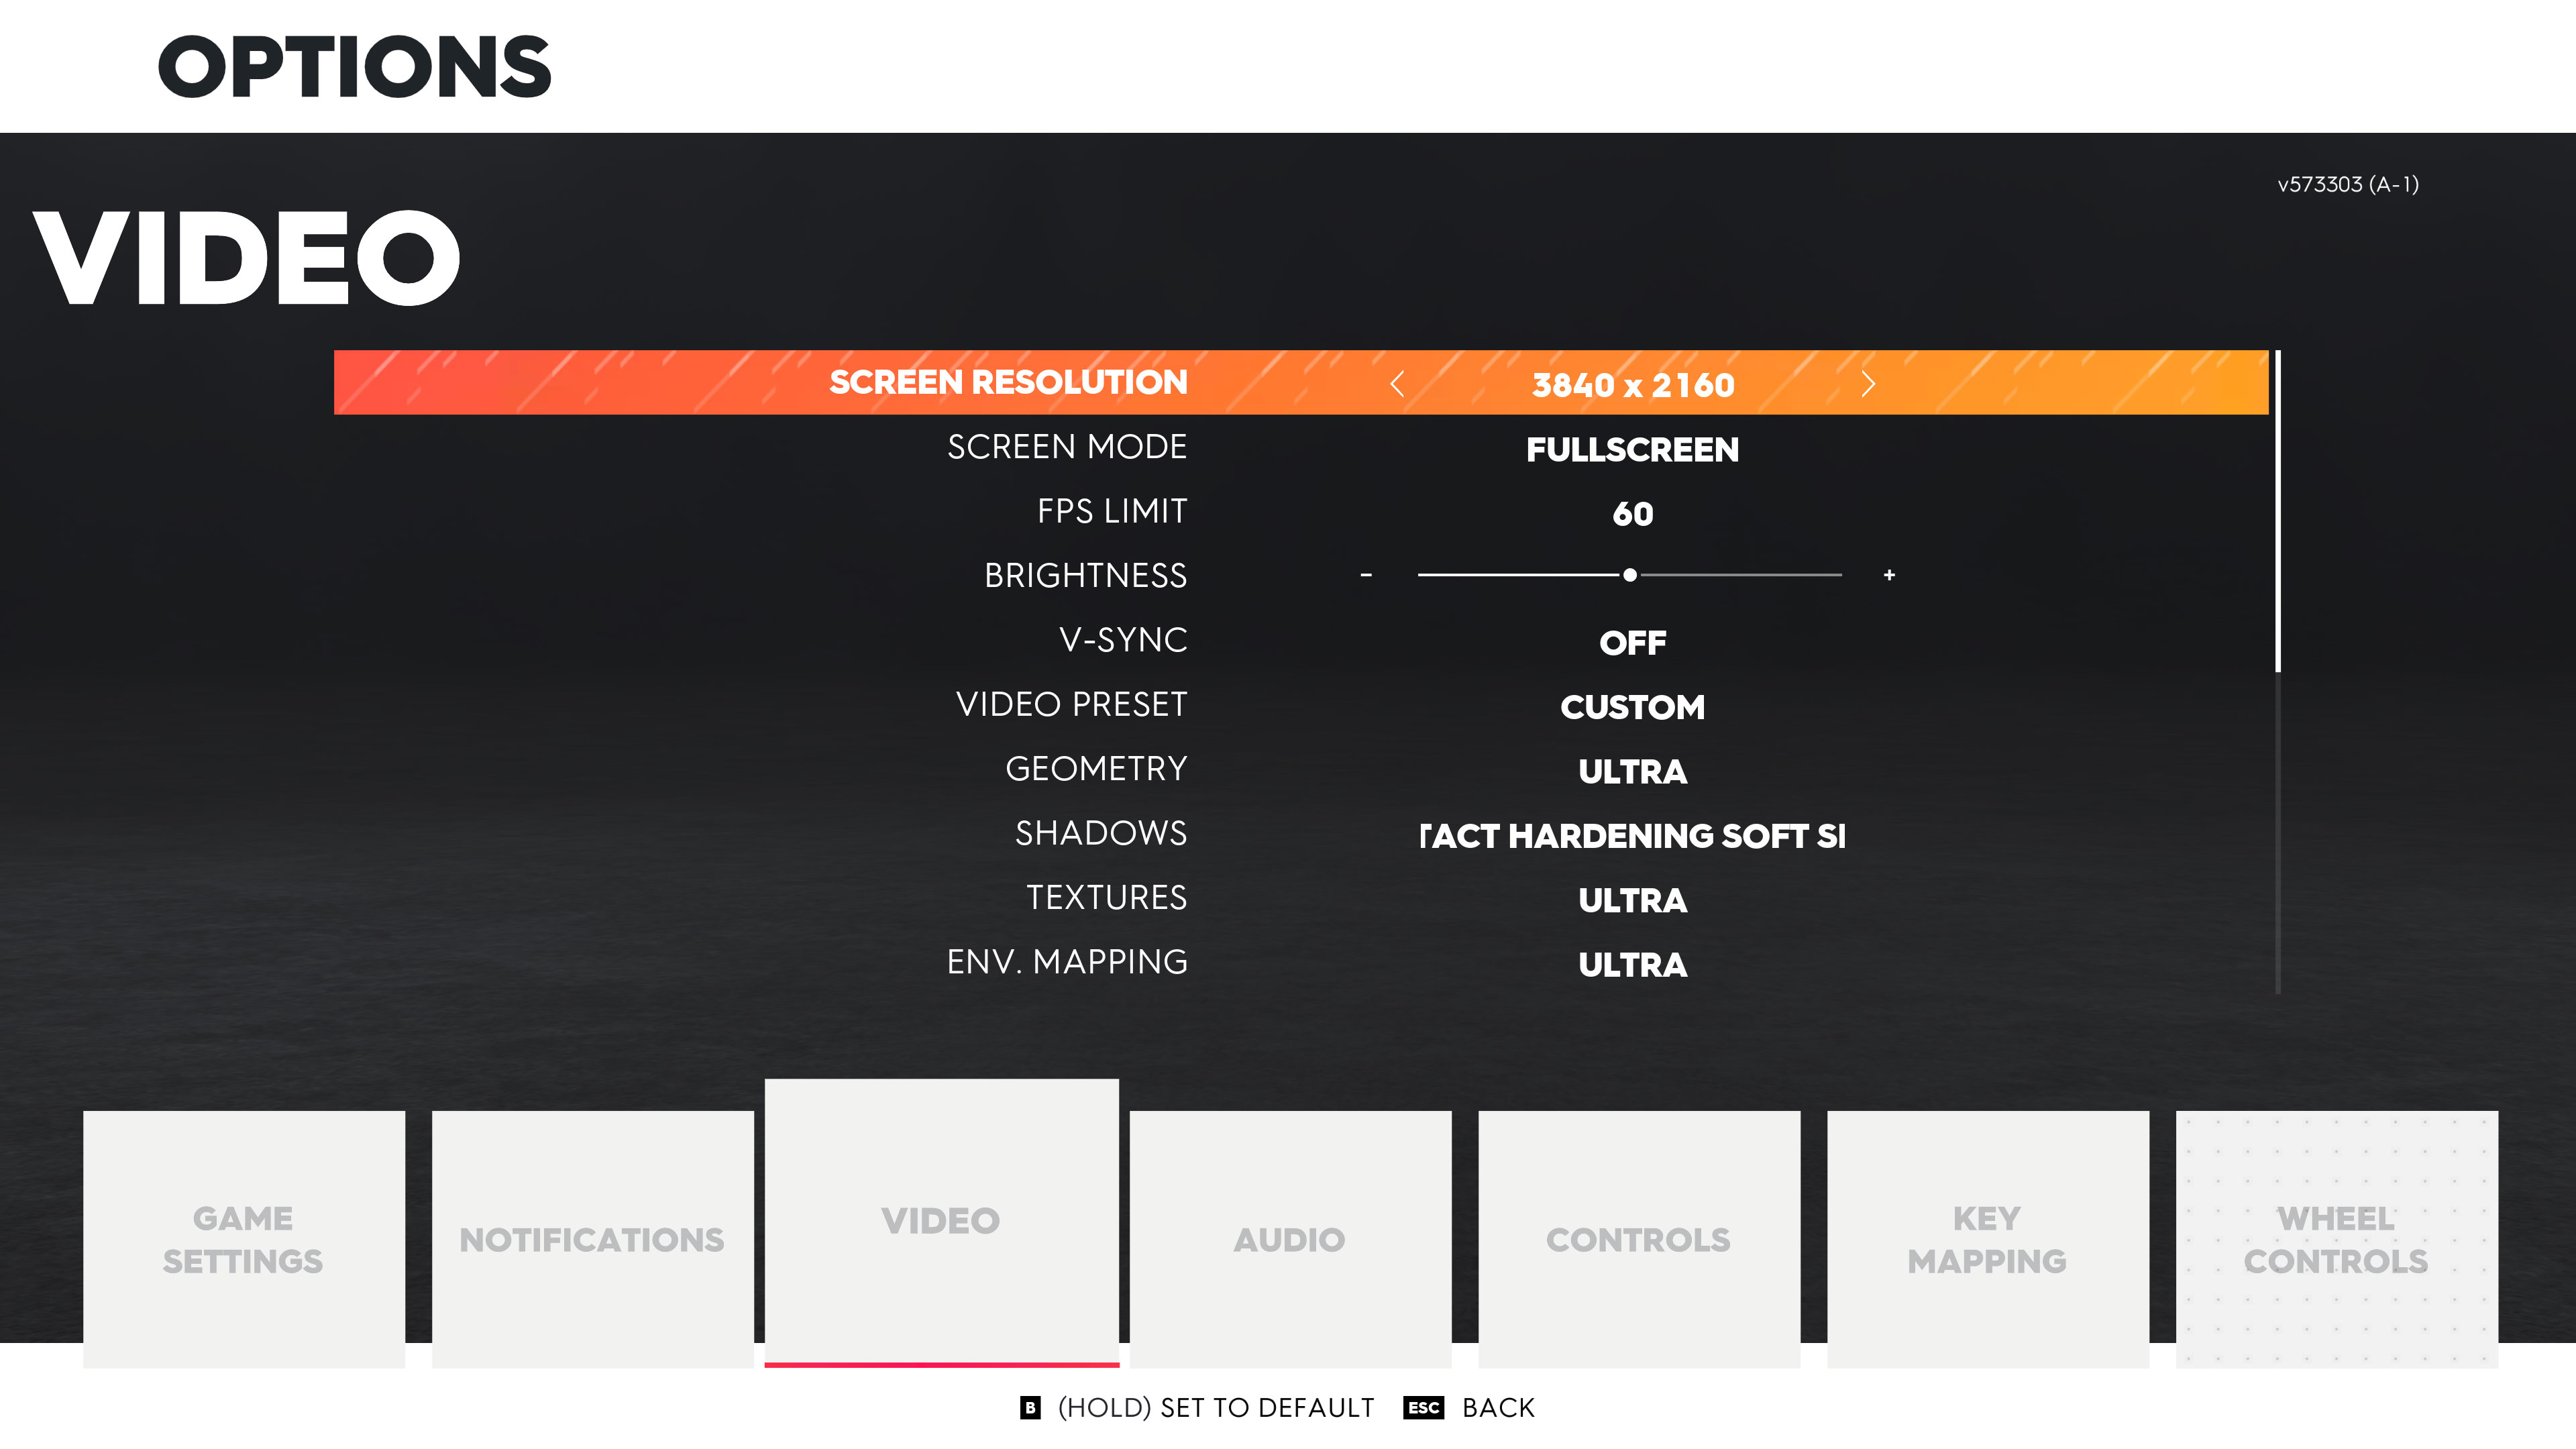 The Crew 2 settings, benchmarks, system requirements, and